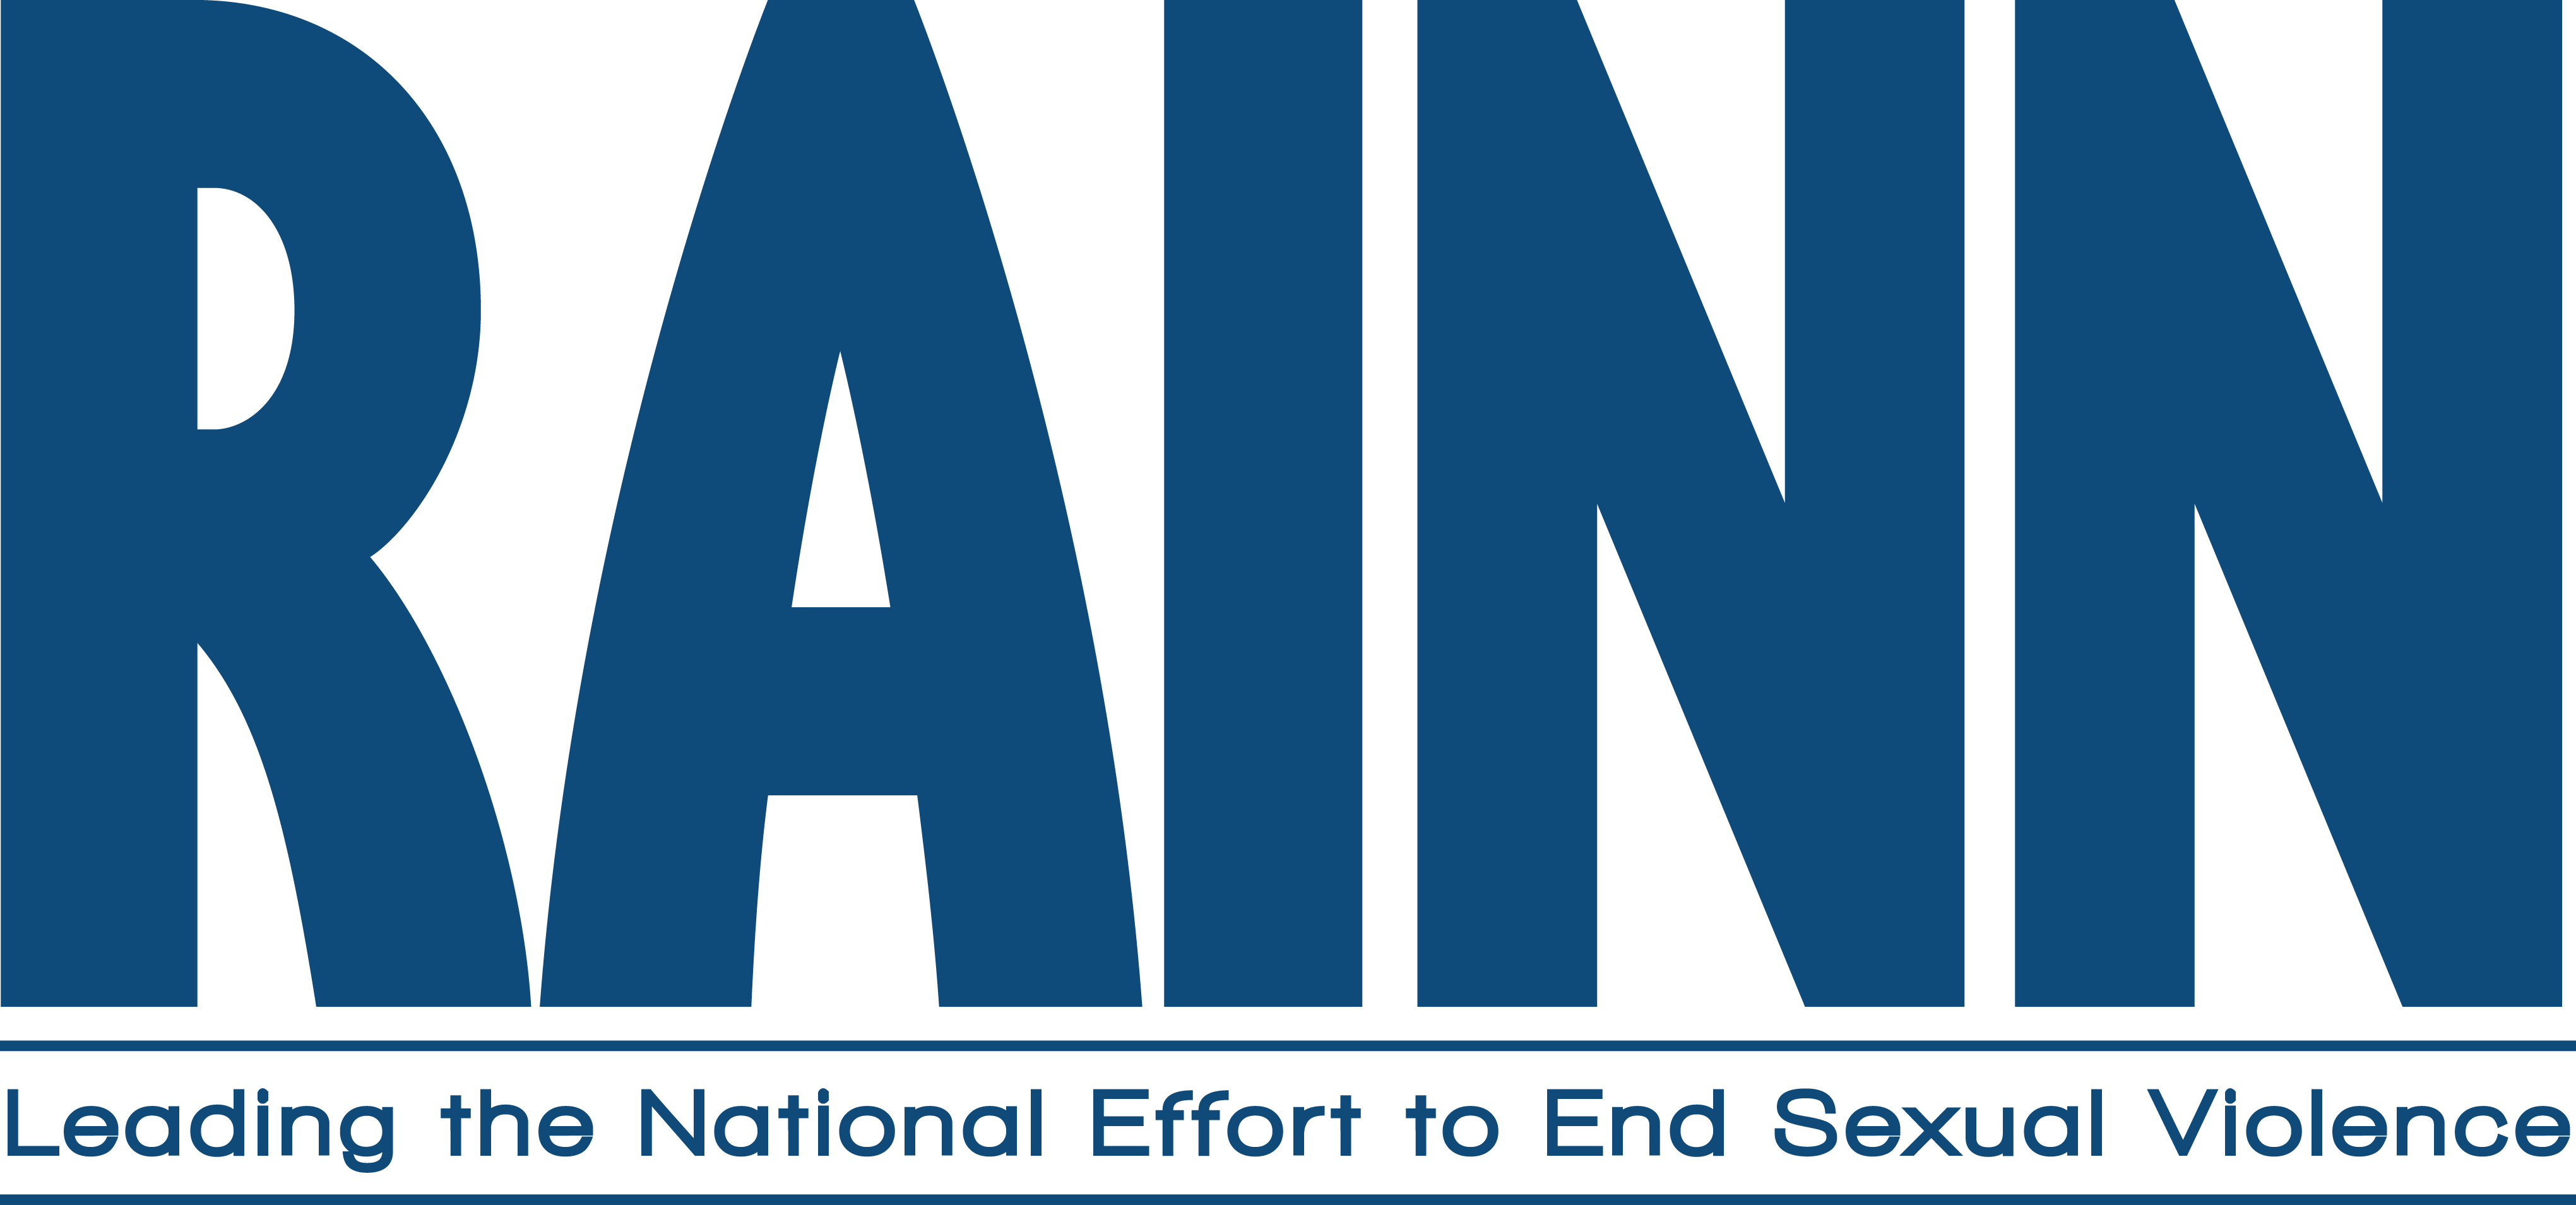 RAINN Leading the National Effort to End Sexual Violence Official Logo